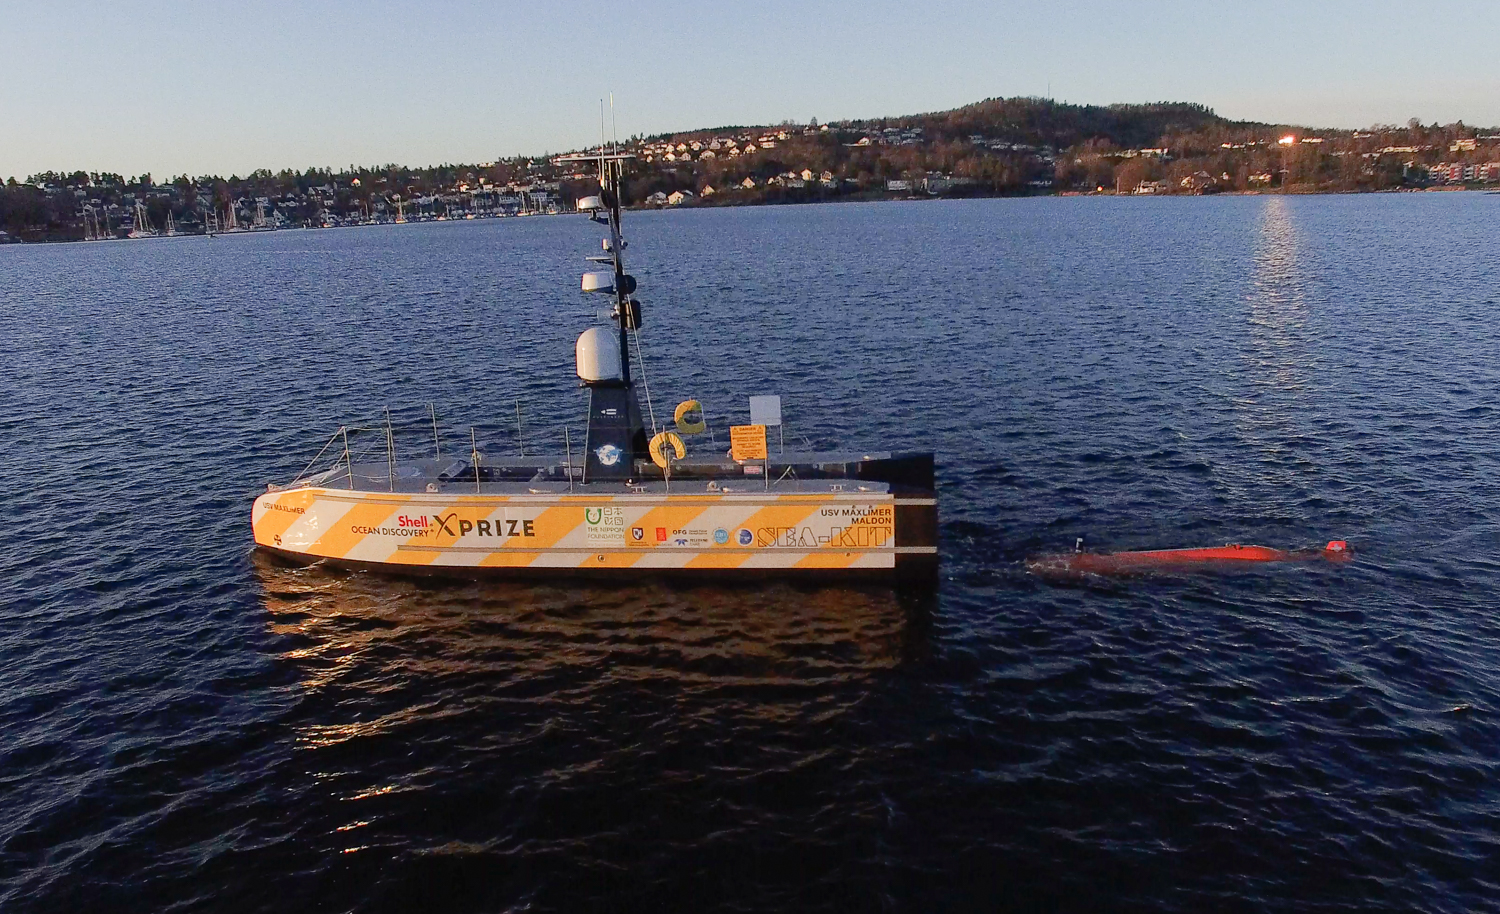 OFG AUV   Chercheur   launching from AUV bay of mothership USV   Maxlimer   (Photo: Lew Abramson)